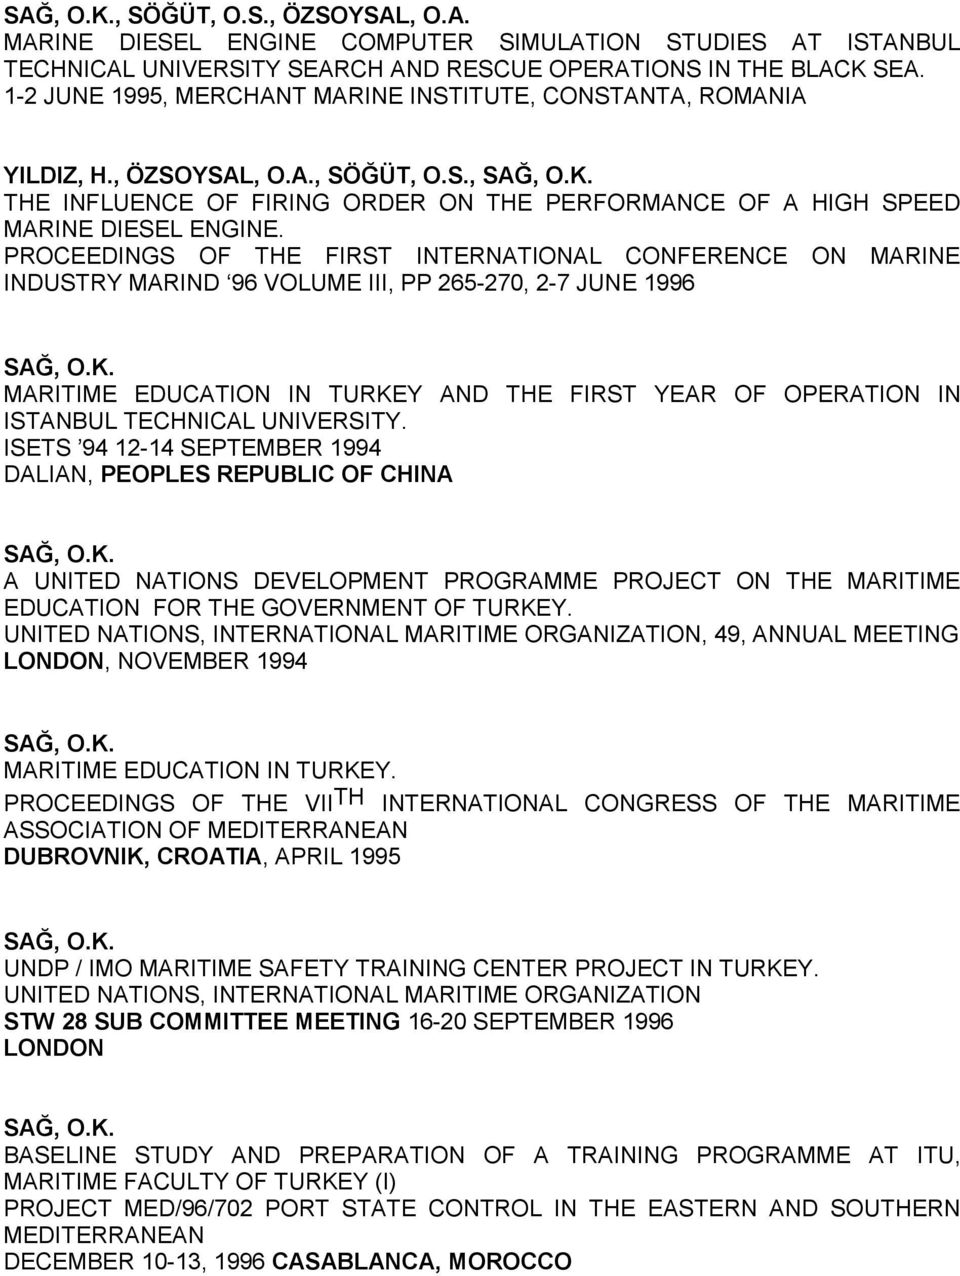 PROCEEDINGS OF THE FIRST INTERNATIONAL CONFERENCE ON MARINE INDUSTRY MARIND 96 VOLUME III, PP 265-270, 2-7 JUNE 1996 MARITIME EDUCATION IN TURKEY AND THE FIRST YEAR OF OPERATION IN ISTANBUL TECHNICAL